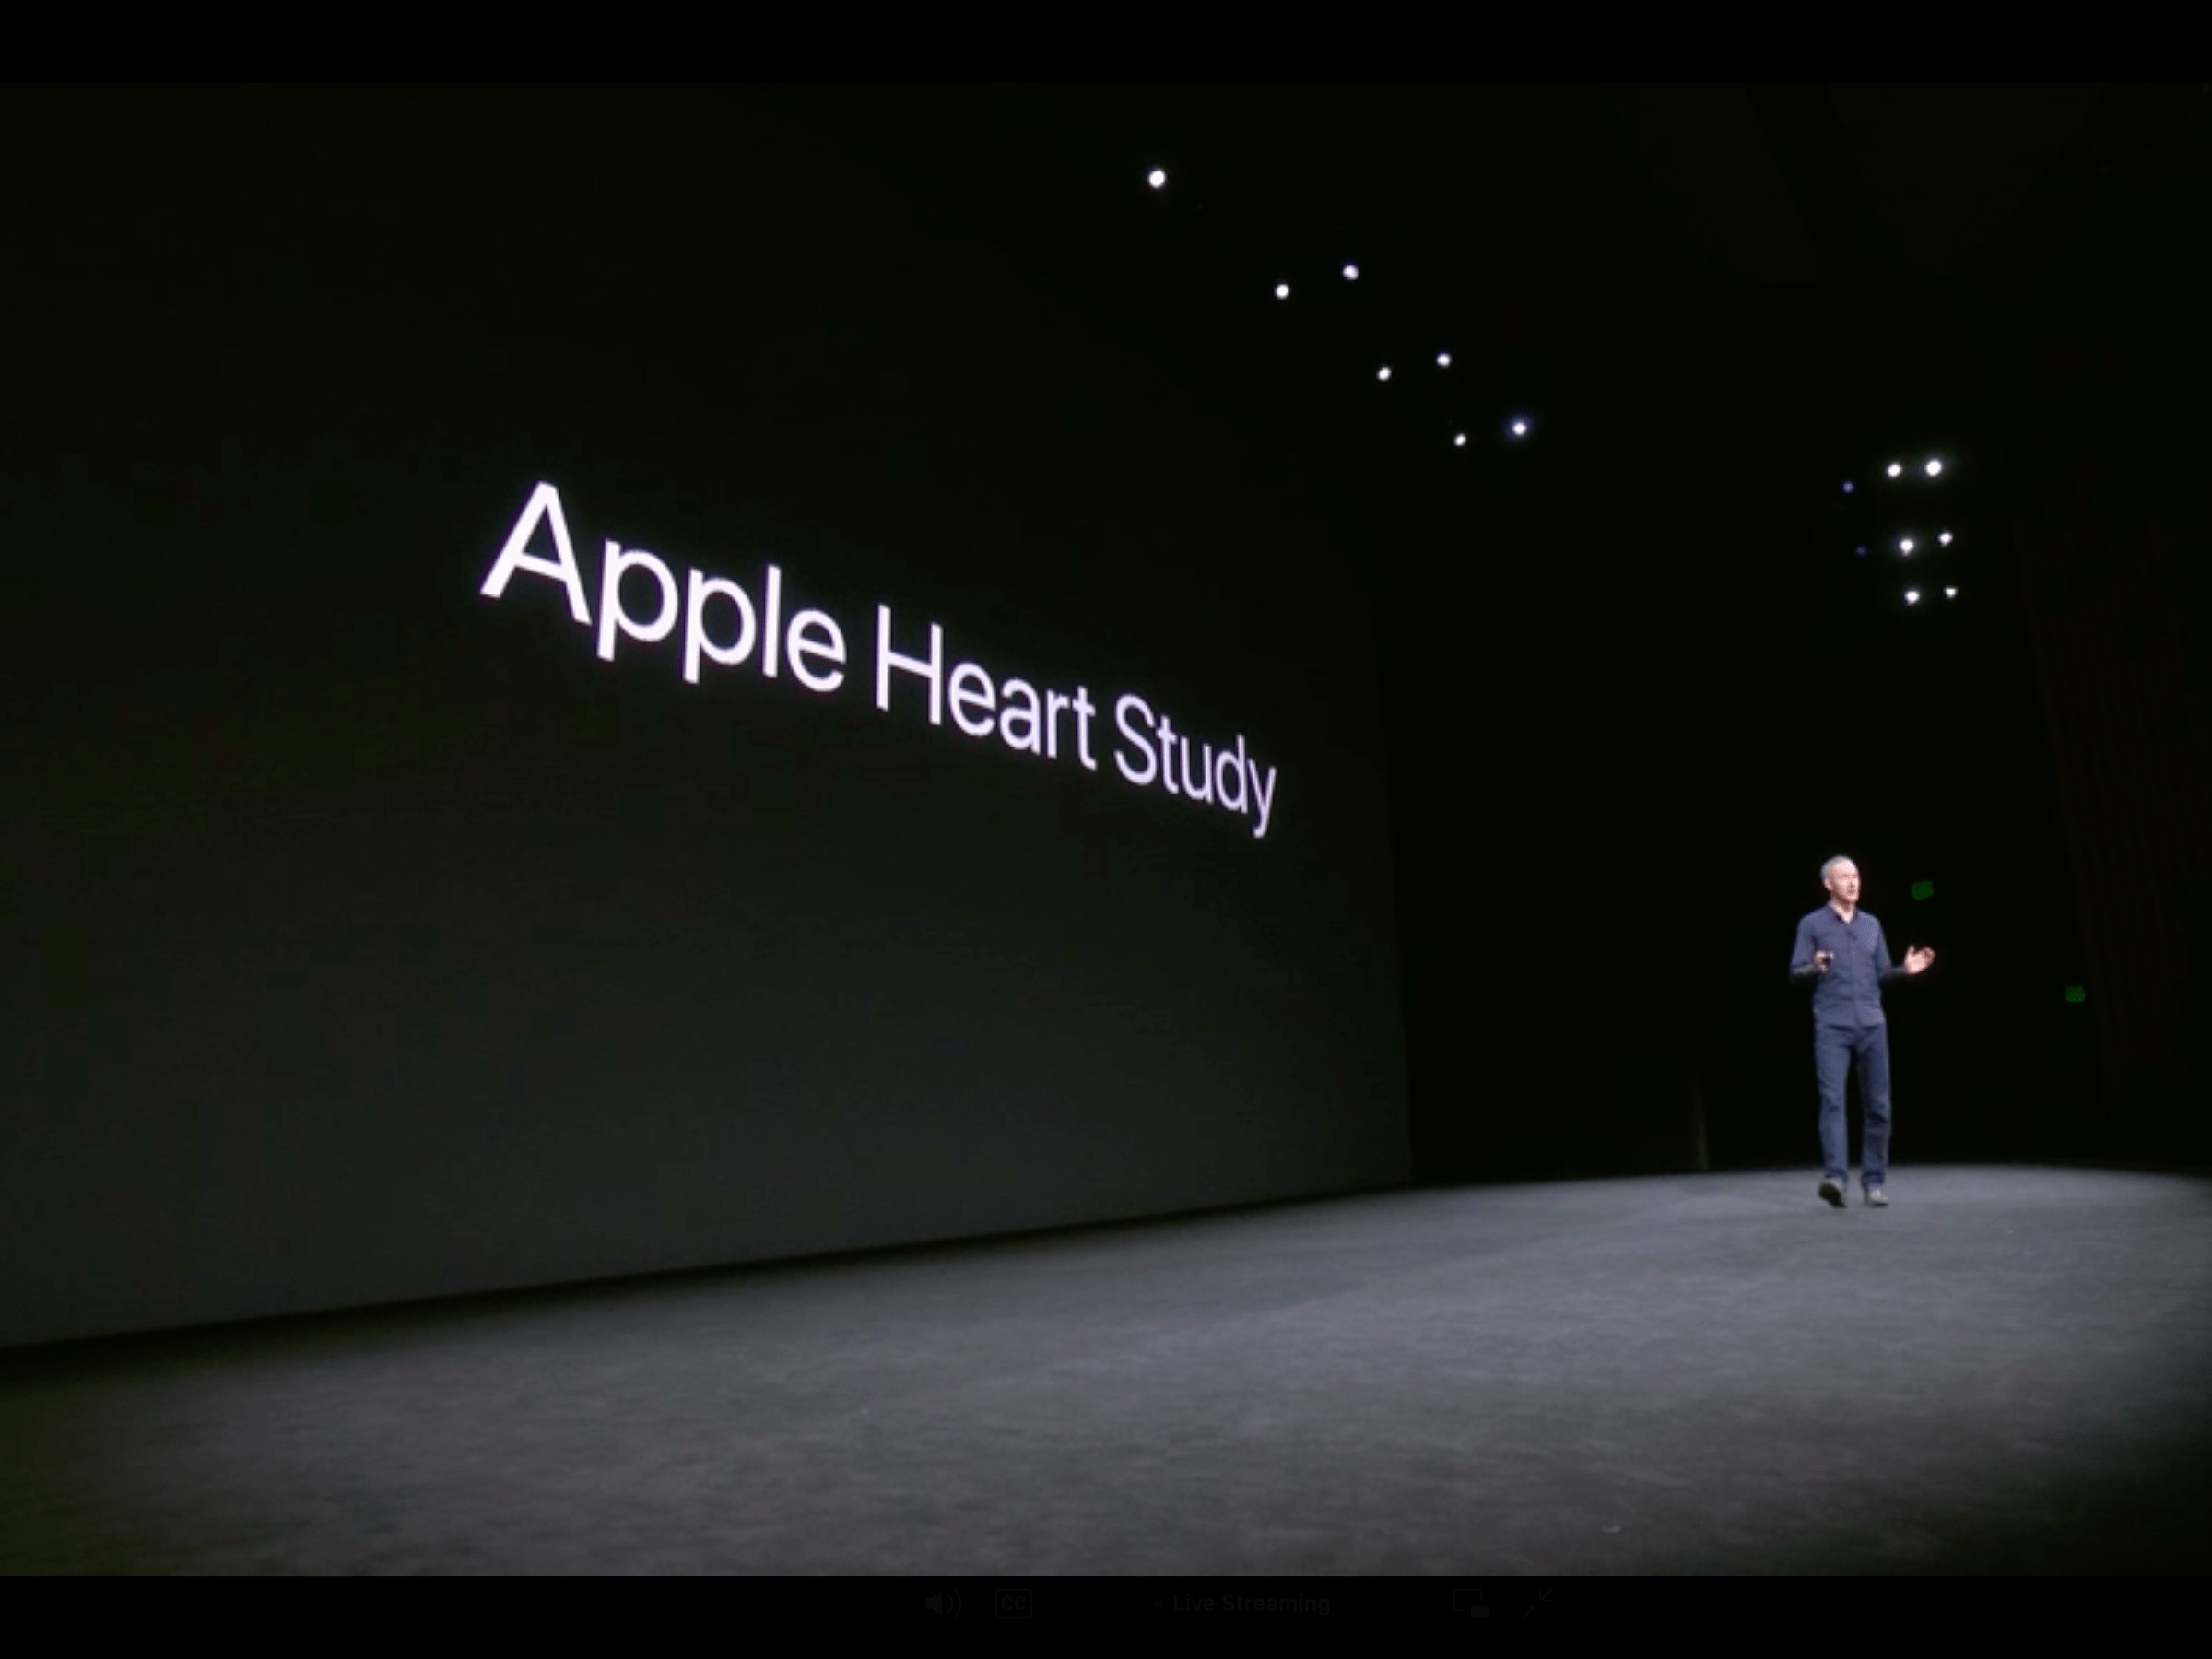 Apple is launching its own heart rate study for Apple Watch users.